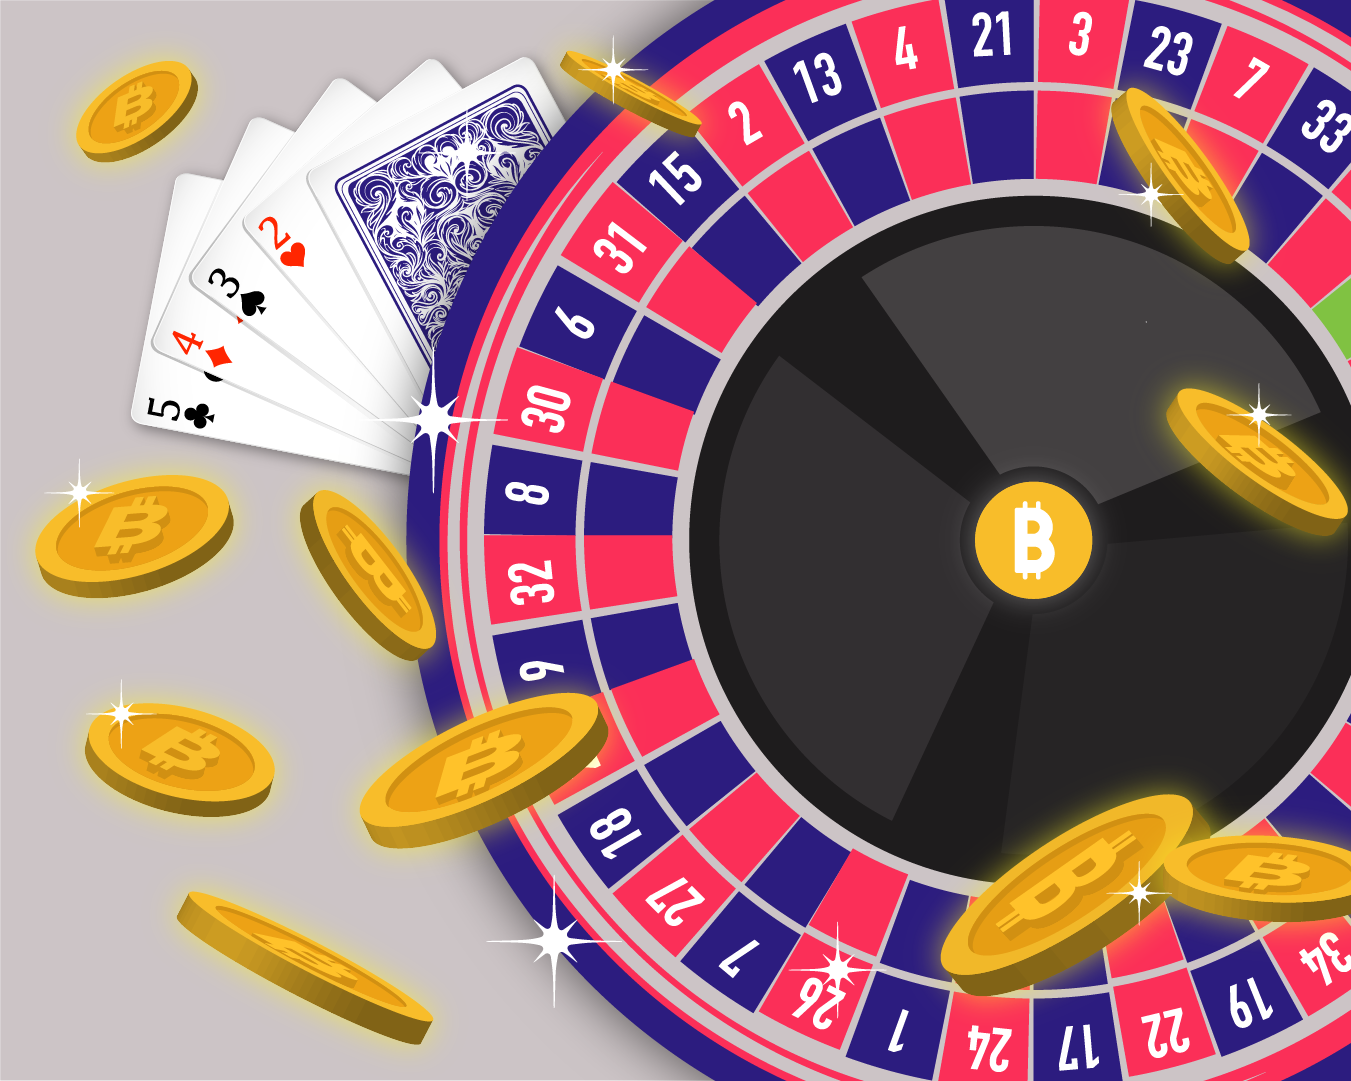 Top 5 Bitcoin Casinos in 2021